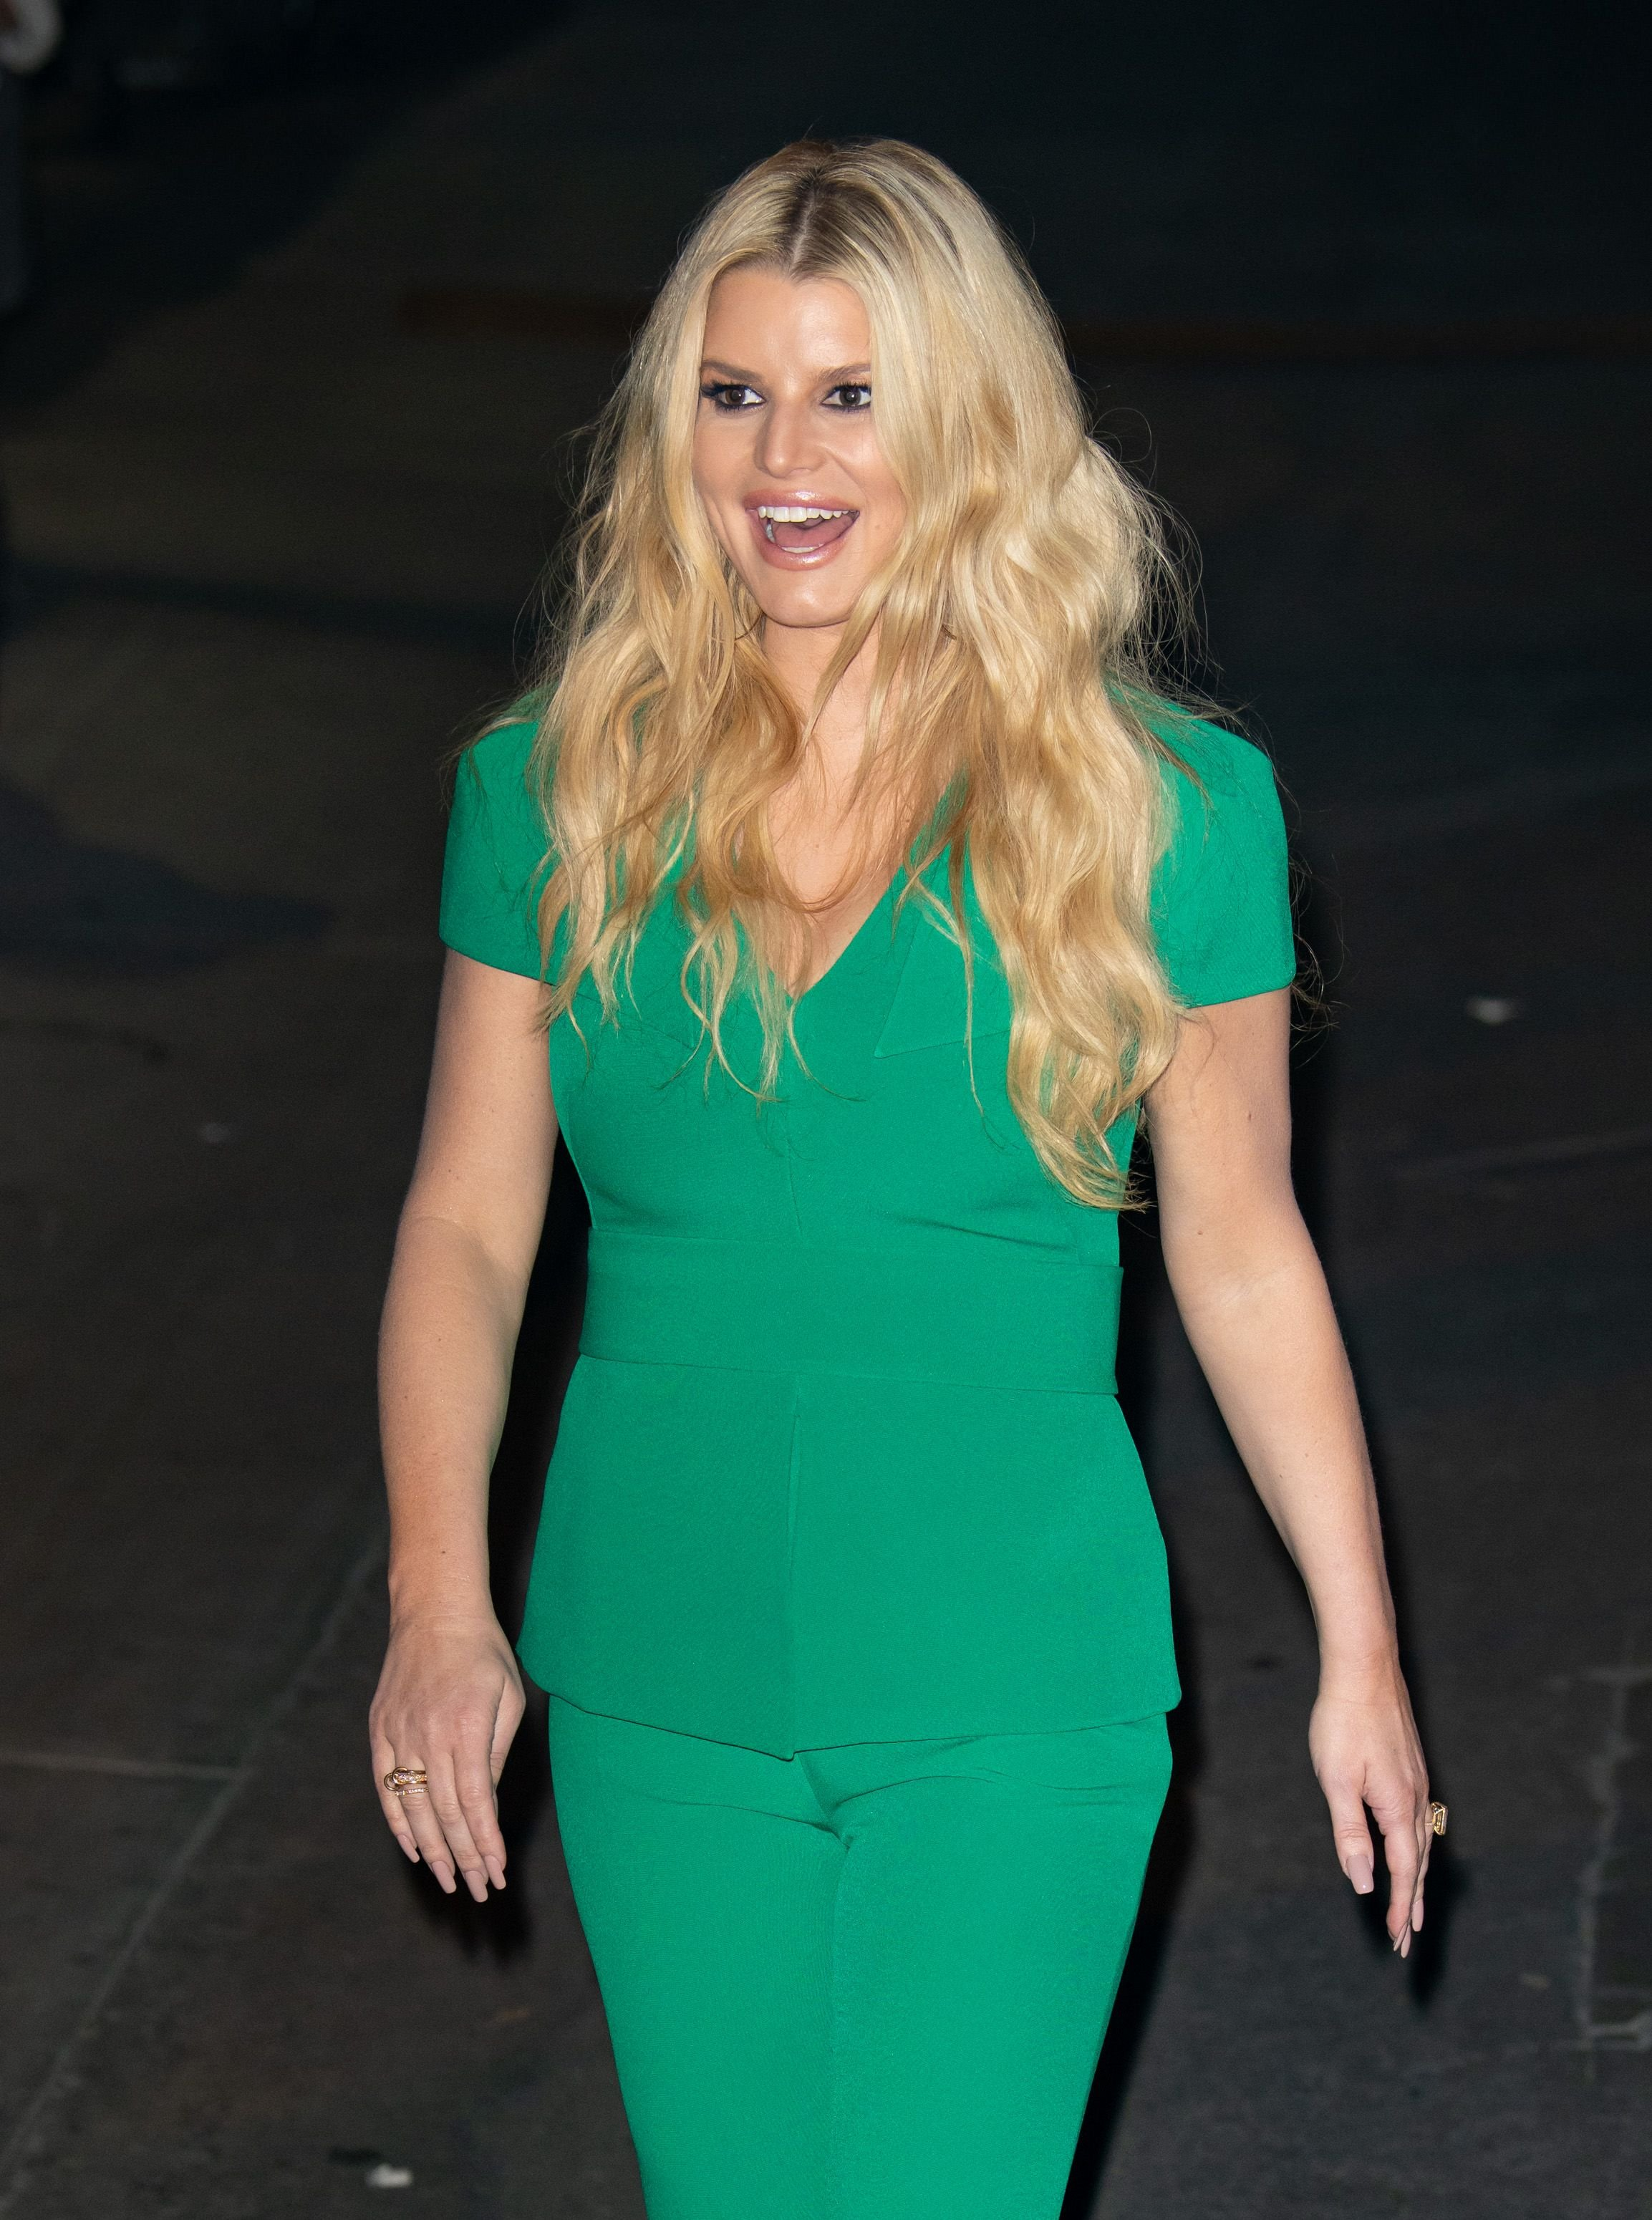 Jessica Simpson at 'Jimmy Kimmel Live' on January 29, 2020 | Photo: Getty Images